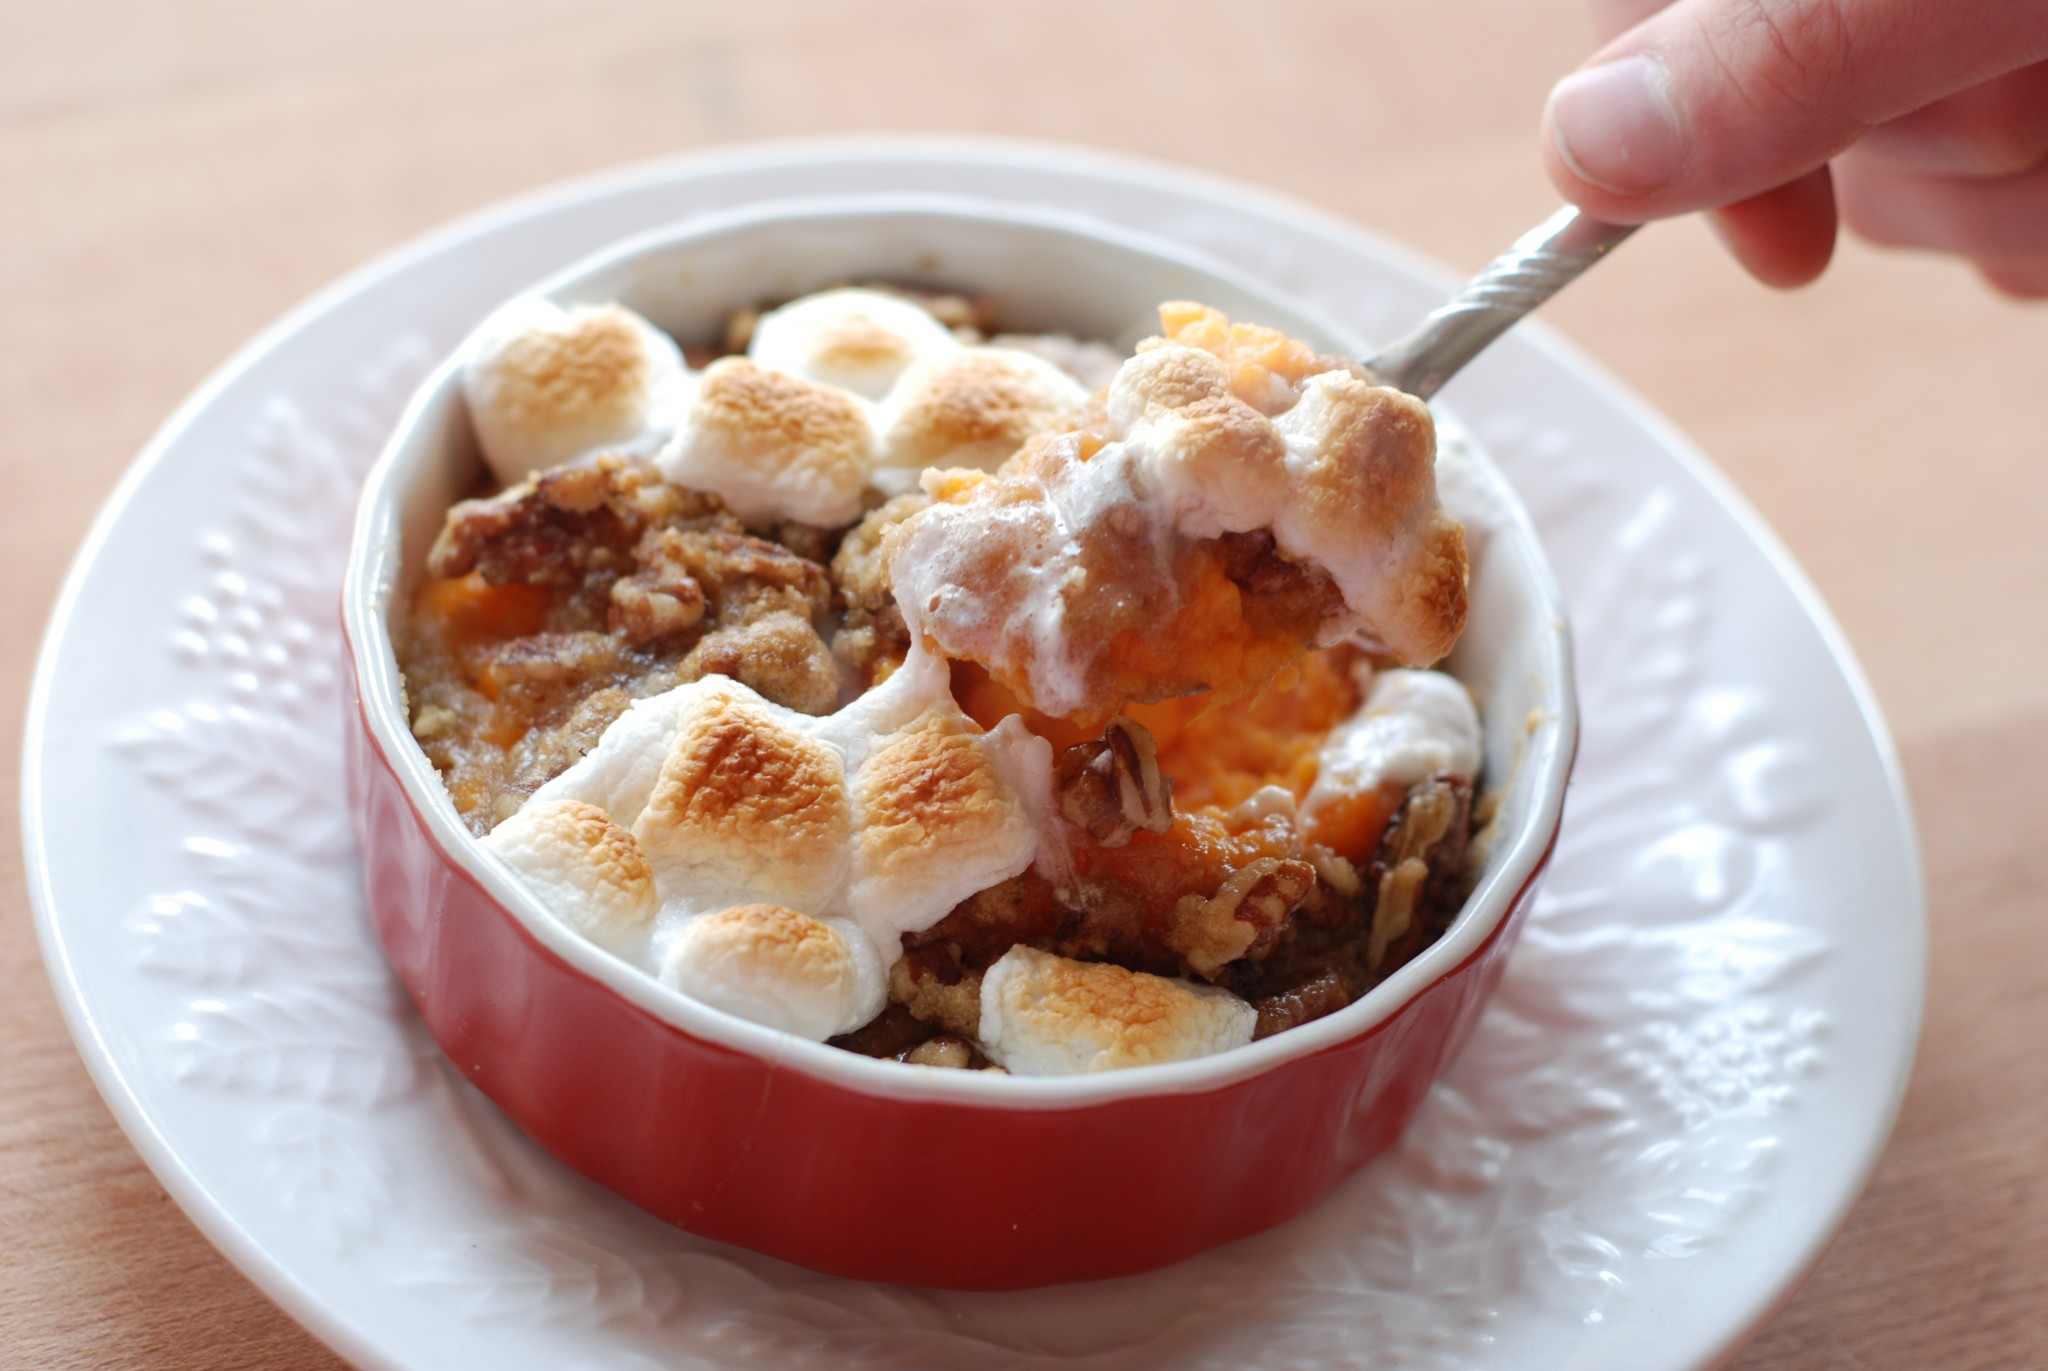 I never used to like sweet potatoes at Thanksgiving until I tried this recipe - Praline Sweet Potatoes with Toasted Marshmallows is the yummiest!